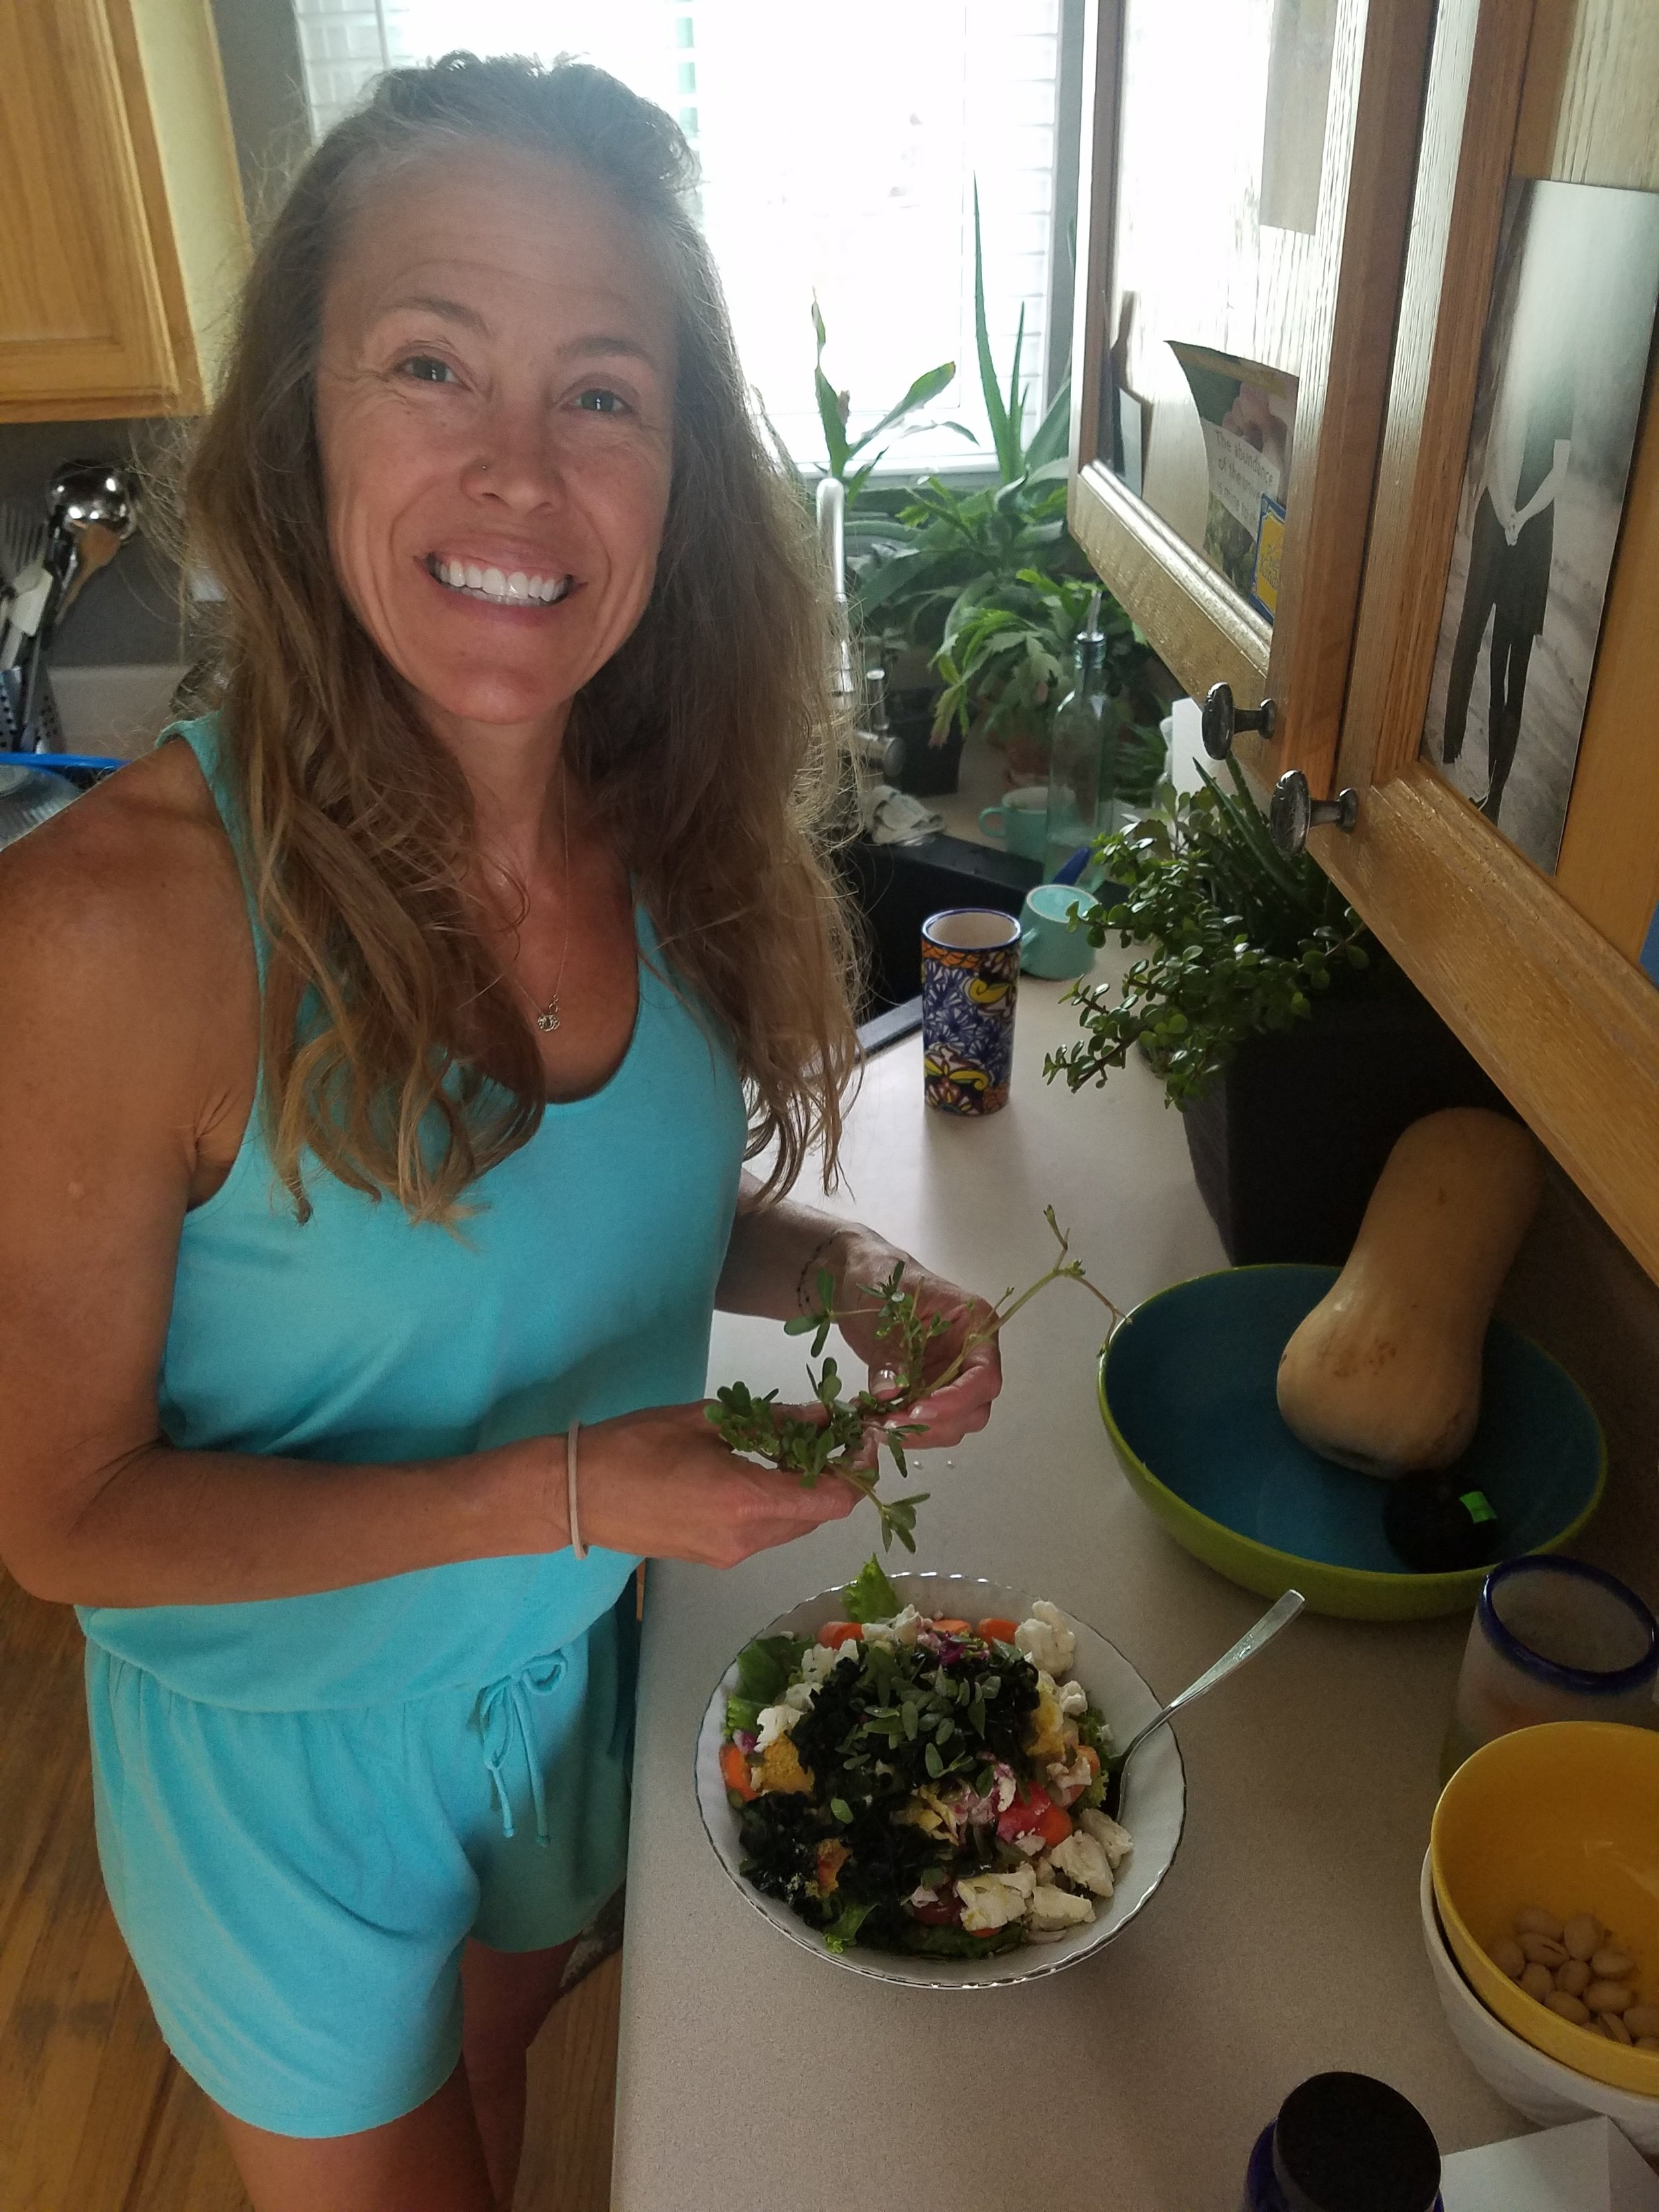 My Top 20 Healthy Eating Tips gives you 20 things I'm doing with my nutrition since my breast cancer diagnosis. -